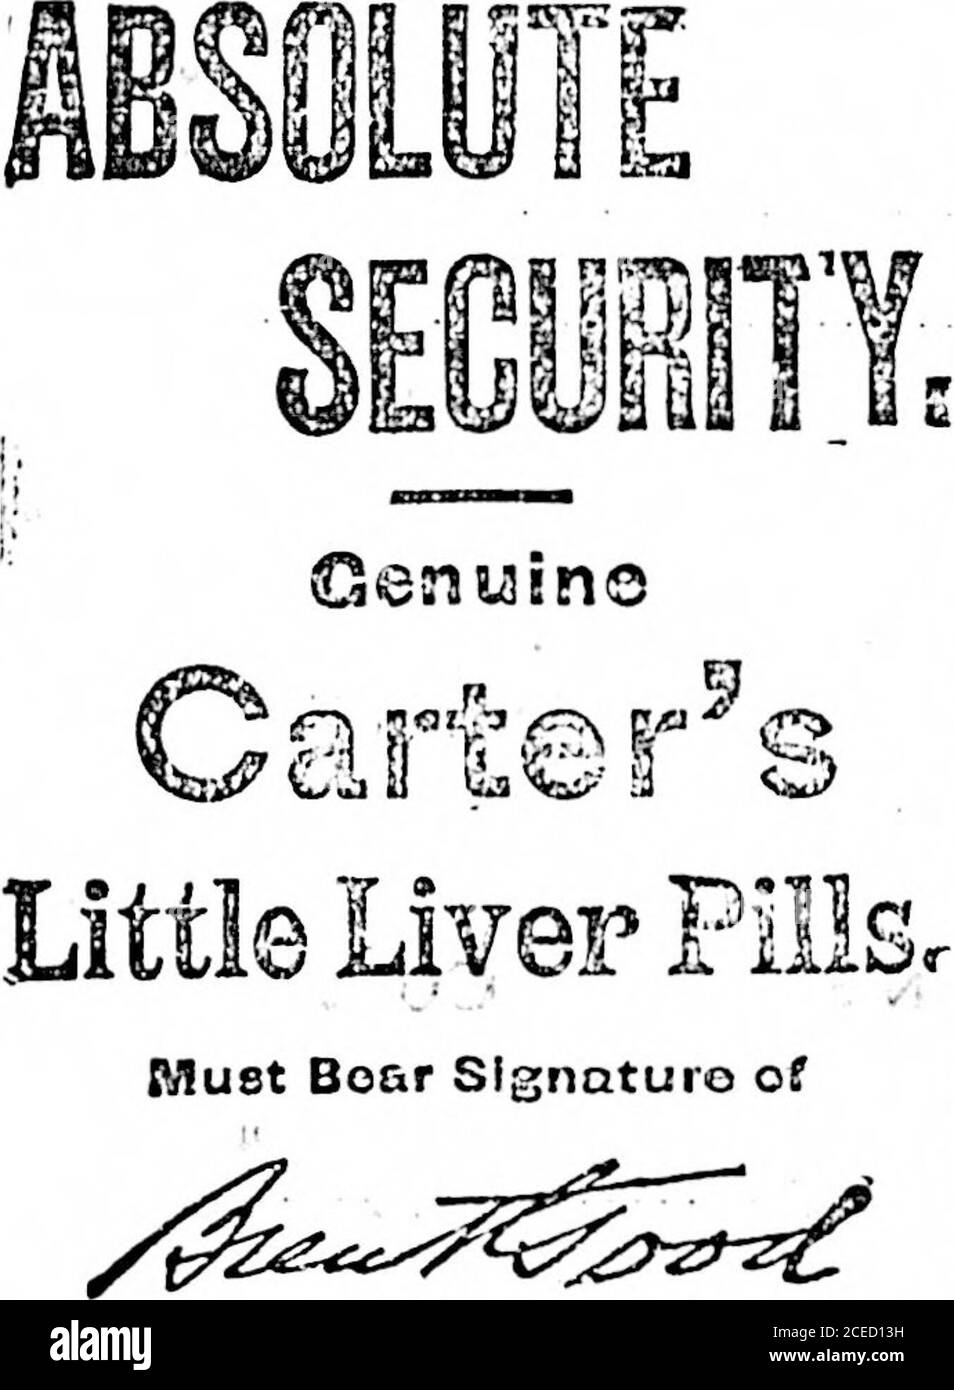 . Daily Colonist (1900-11-22). tfullyapproach you. In the bone, and wlt.li therequest, that you may see your way idearto cans* an order to be Issued to the effectthat one of the captured grins, used VV theRoers attalnst the British arms, be trans-ported to this city, to be us* d for the i>ur- -.posc of-providing a suitable monument tothose soldiers who ttnlistcd In this city, andwho served their Queen and Country la The -recent wan In South Africa. ?I have the honor to be. sir,-pour obedieutservant, CTIAS. HAYWARD, Mayor. •To Her Majestys Principal Secretary of?State, for the Colonial Depar Stock Photo